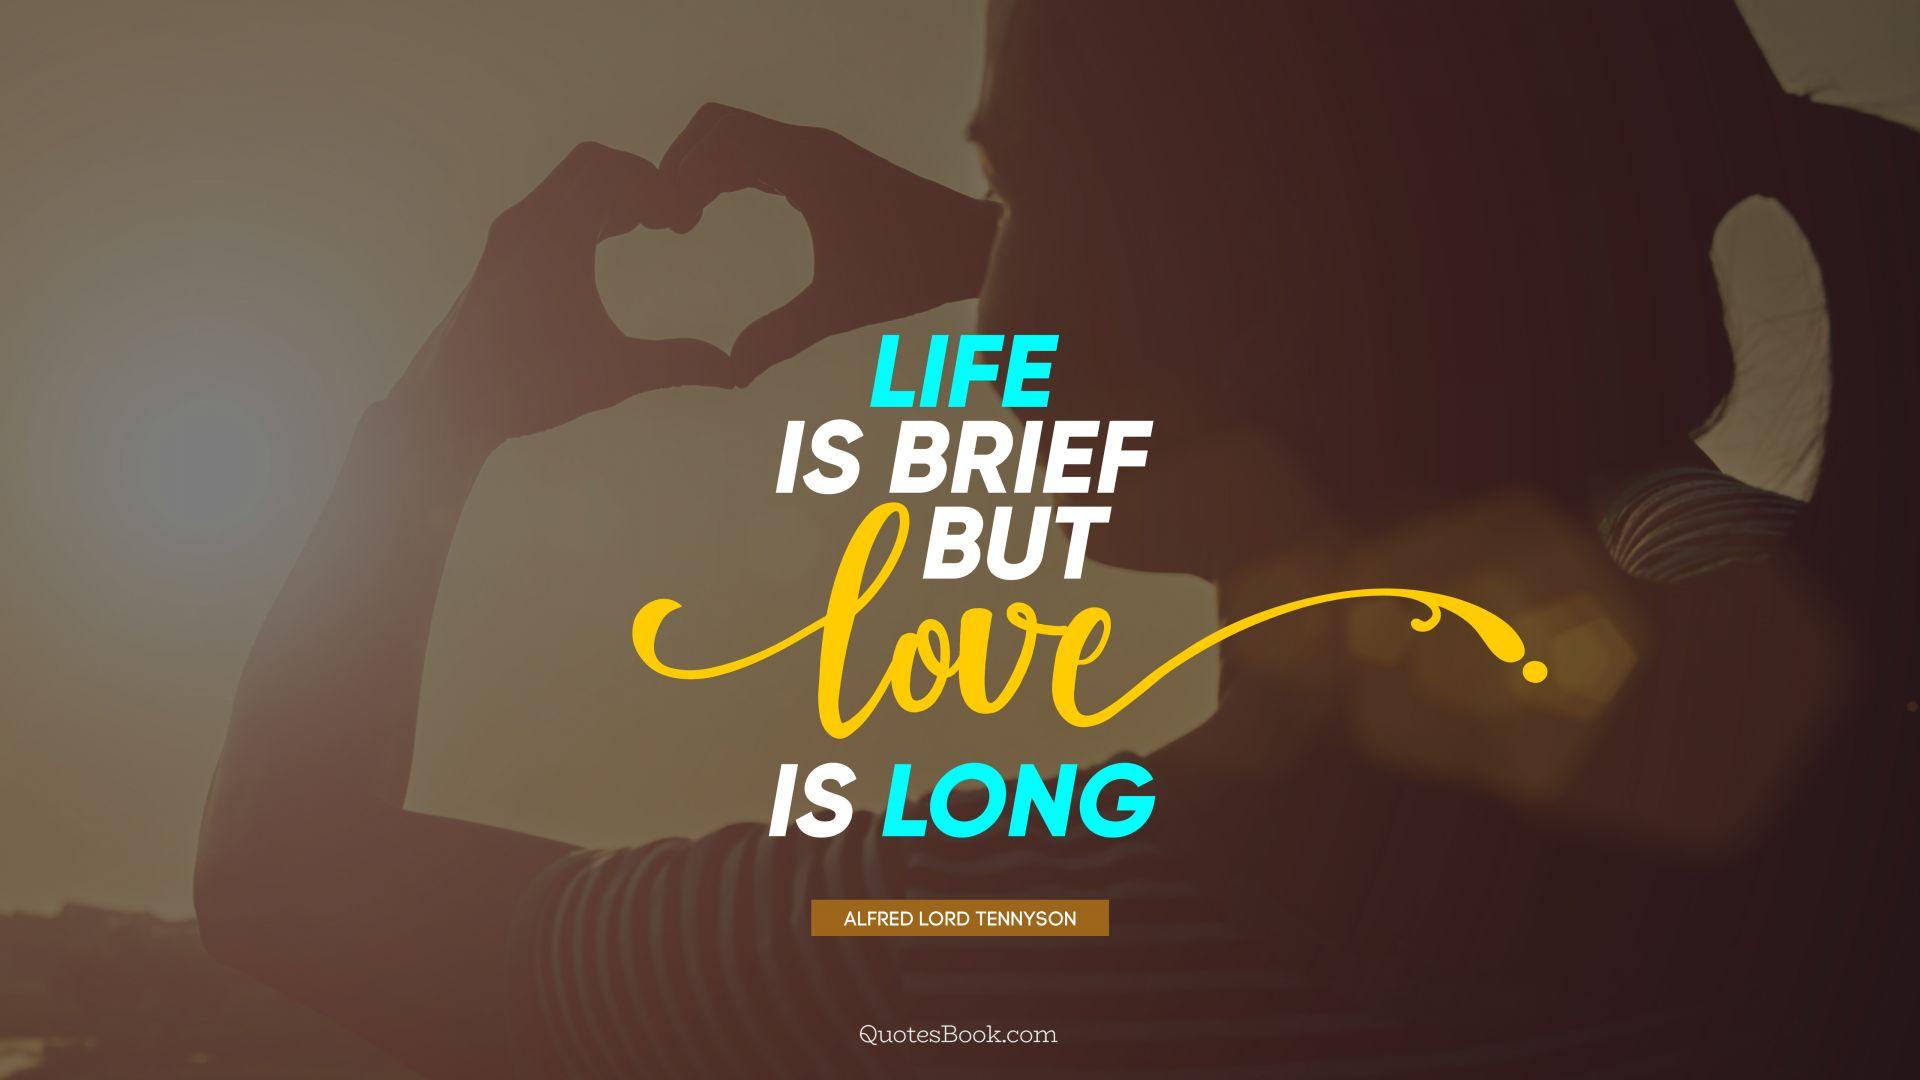 Life is brief but love is LONG. - Quote by Alfred Lord Tennyson